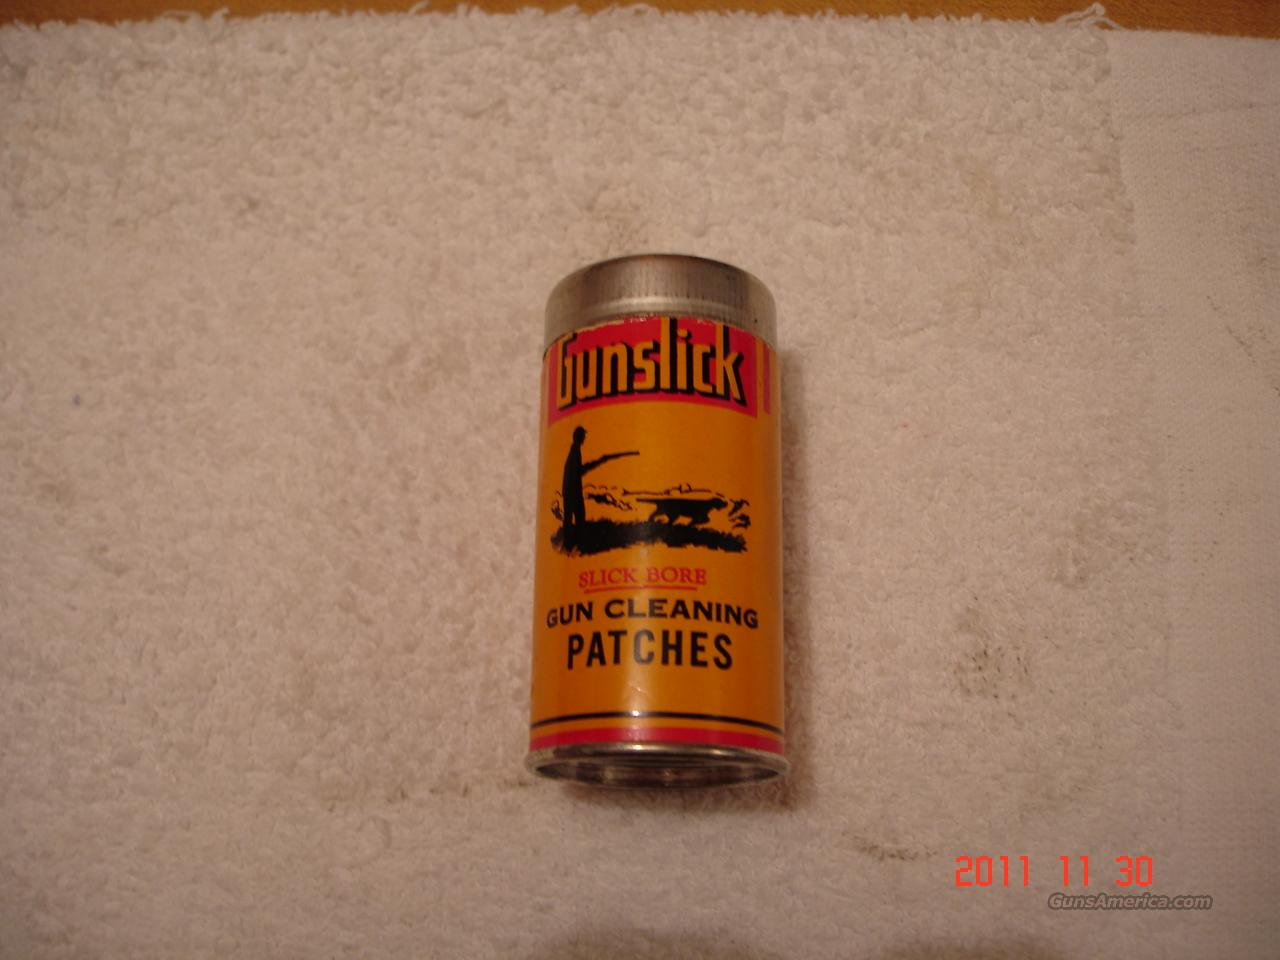 Vintage Gunslick cleaning patch container  Non-Guns > Curios